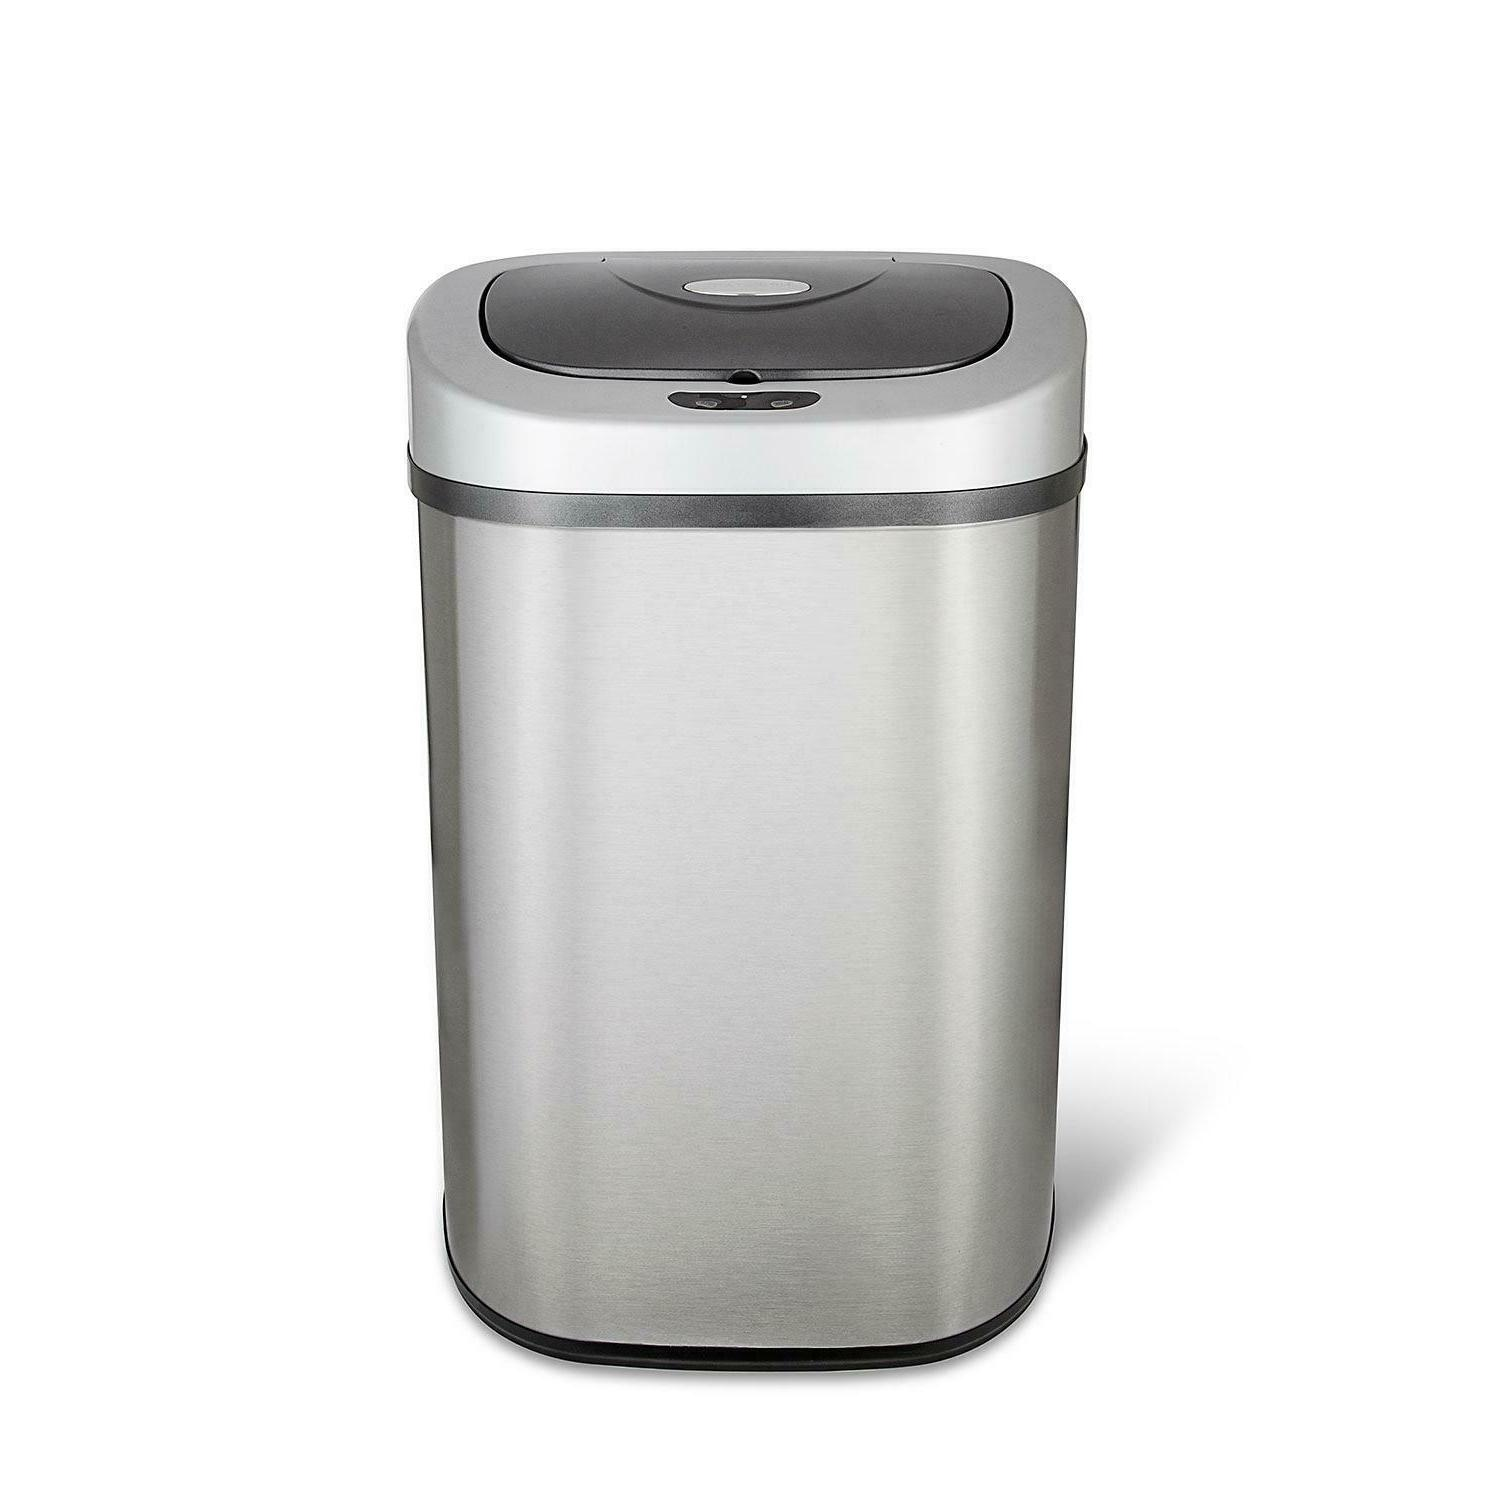 sensor trash can stainless steel 21 1